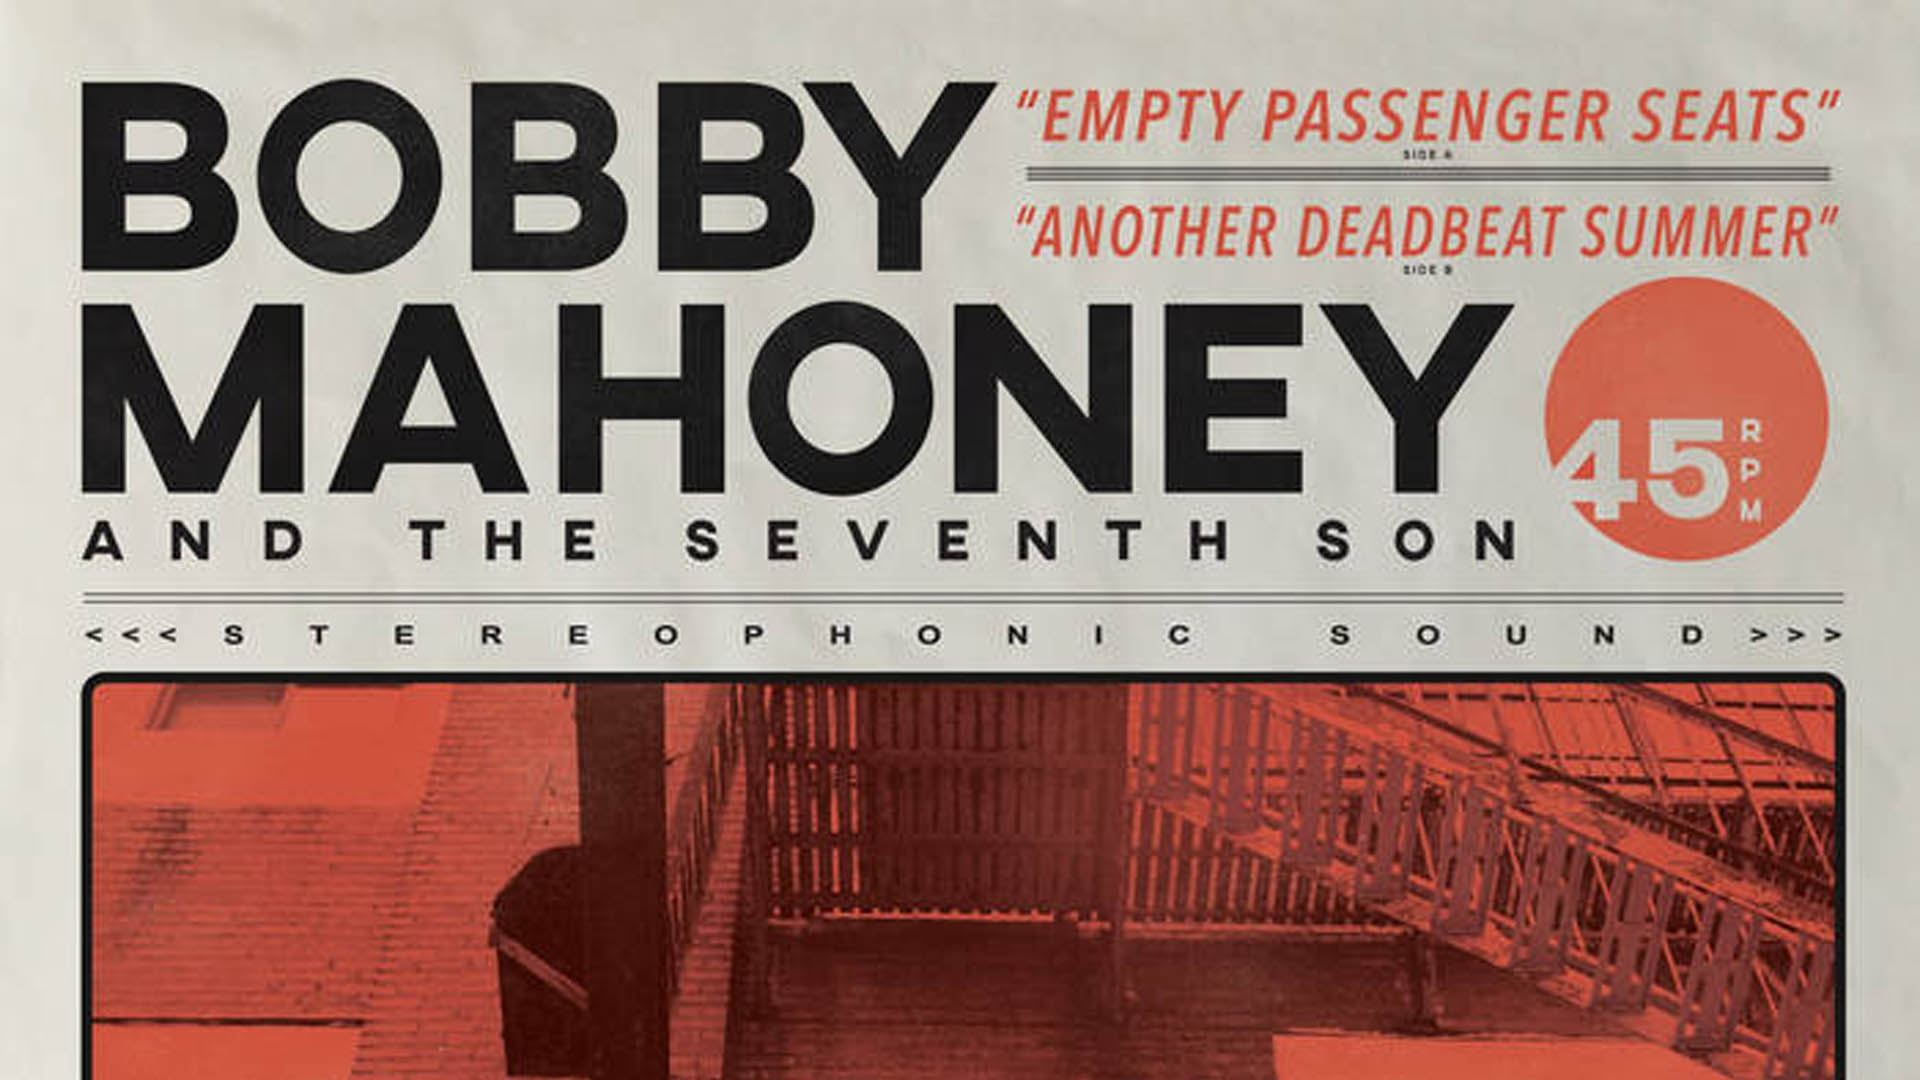 "BOBBY MAHONEY AND THE SEVENTH SON - ""EMPTY PASSENGER SEATS"" (SINGLE REVIEW)   Alternative Rock   East Brunswick, NJ    Posted December 26, 2017"